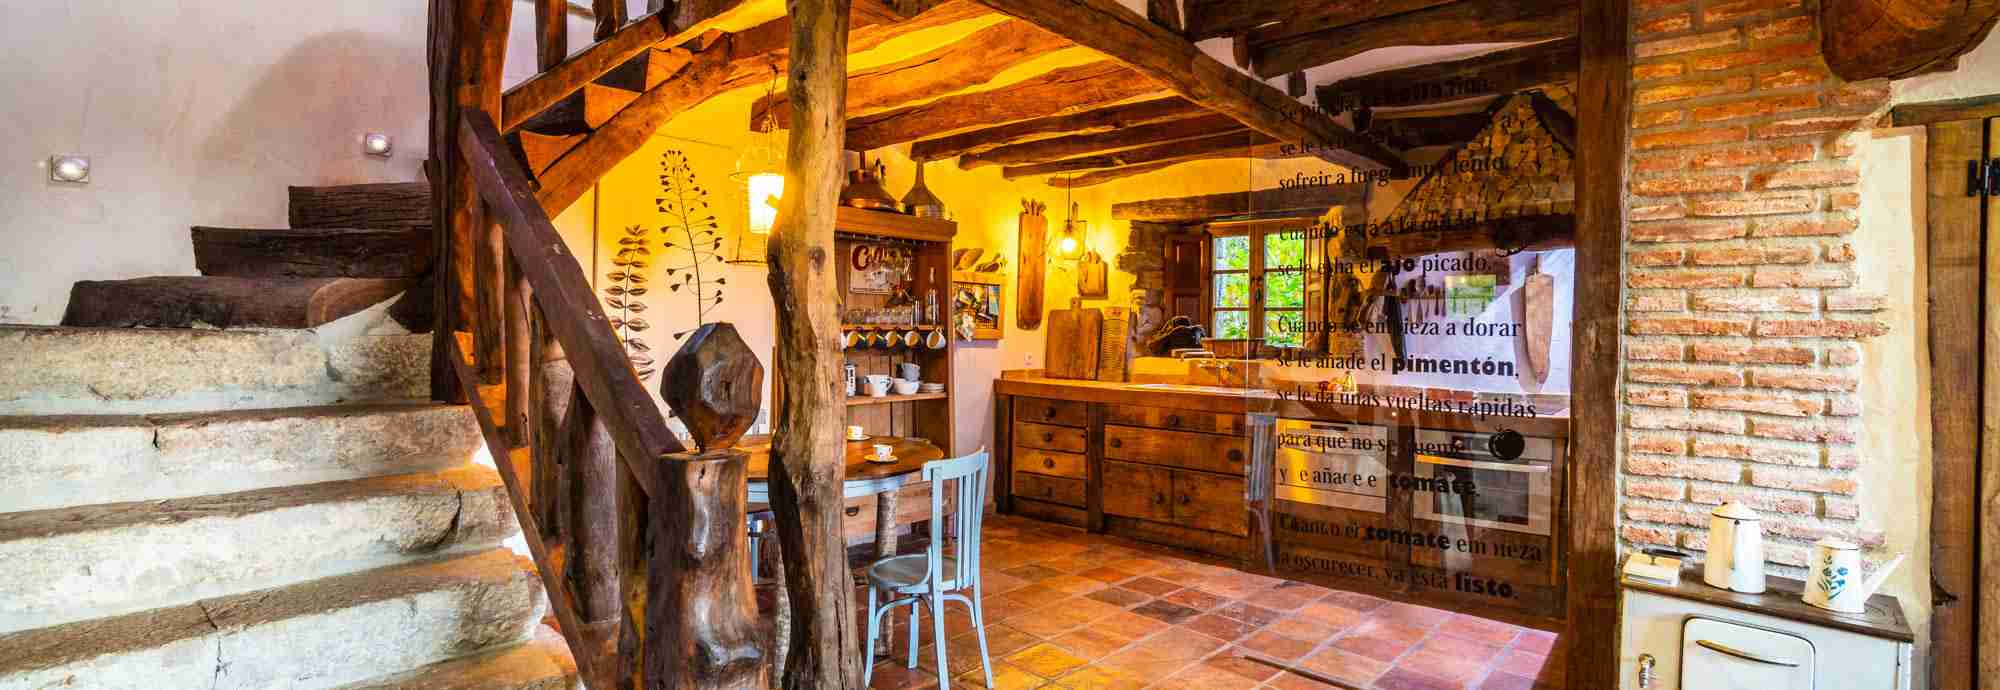 A cottage with rustic elegance in idyllic seclusion near Santander